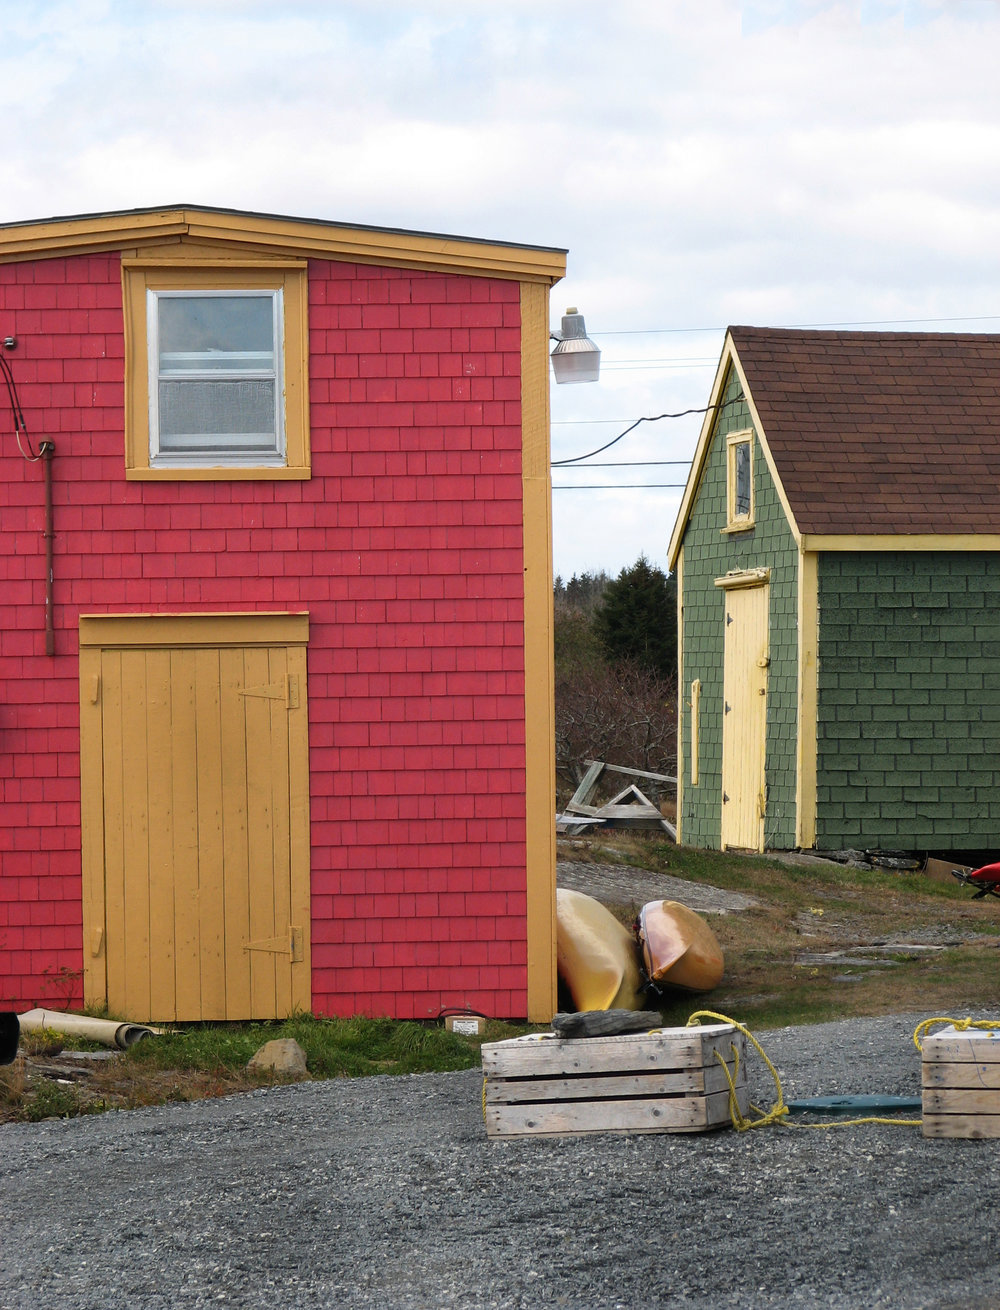 A view of buildings at Blue Rocks in Nova Scotia.